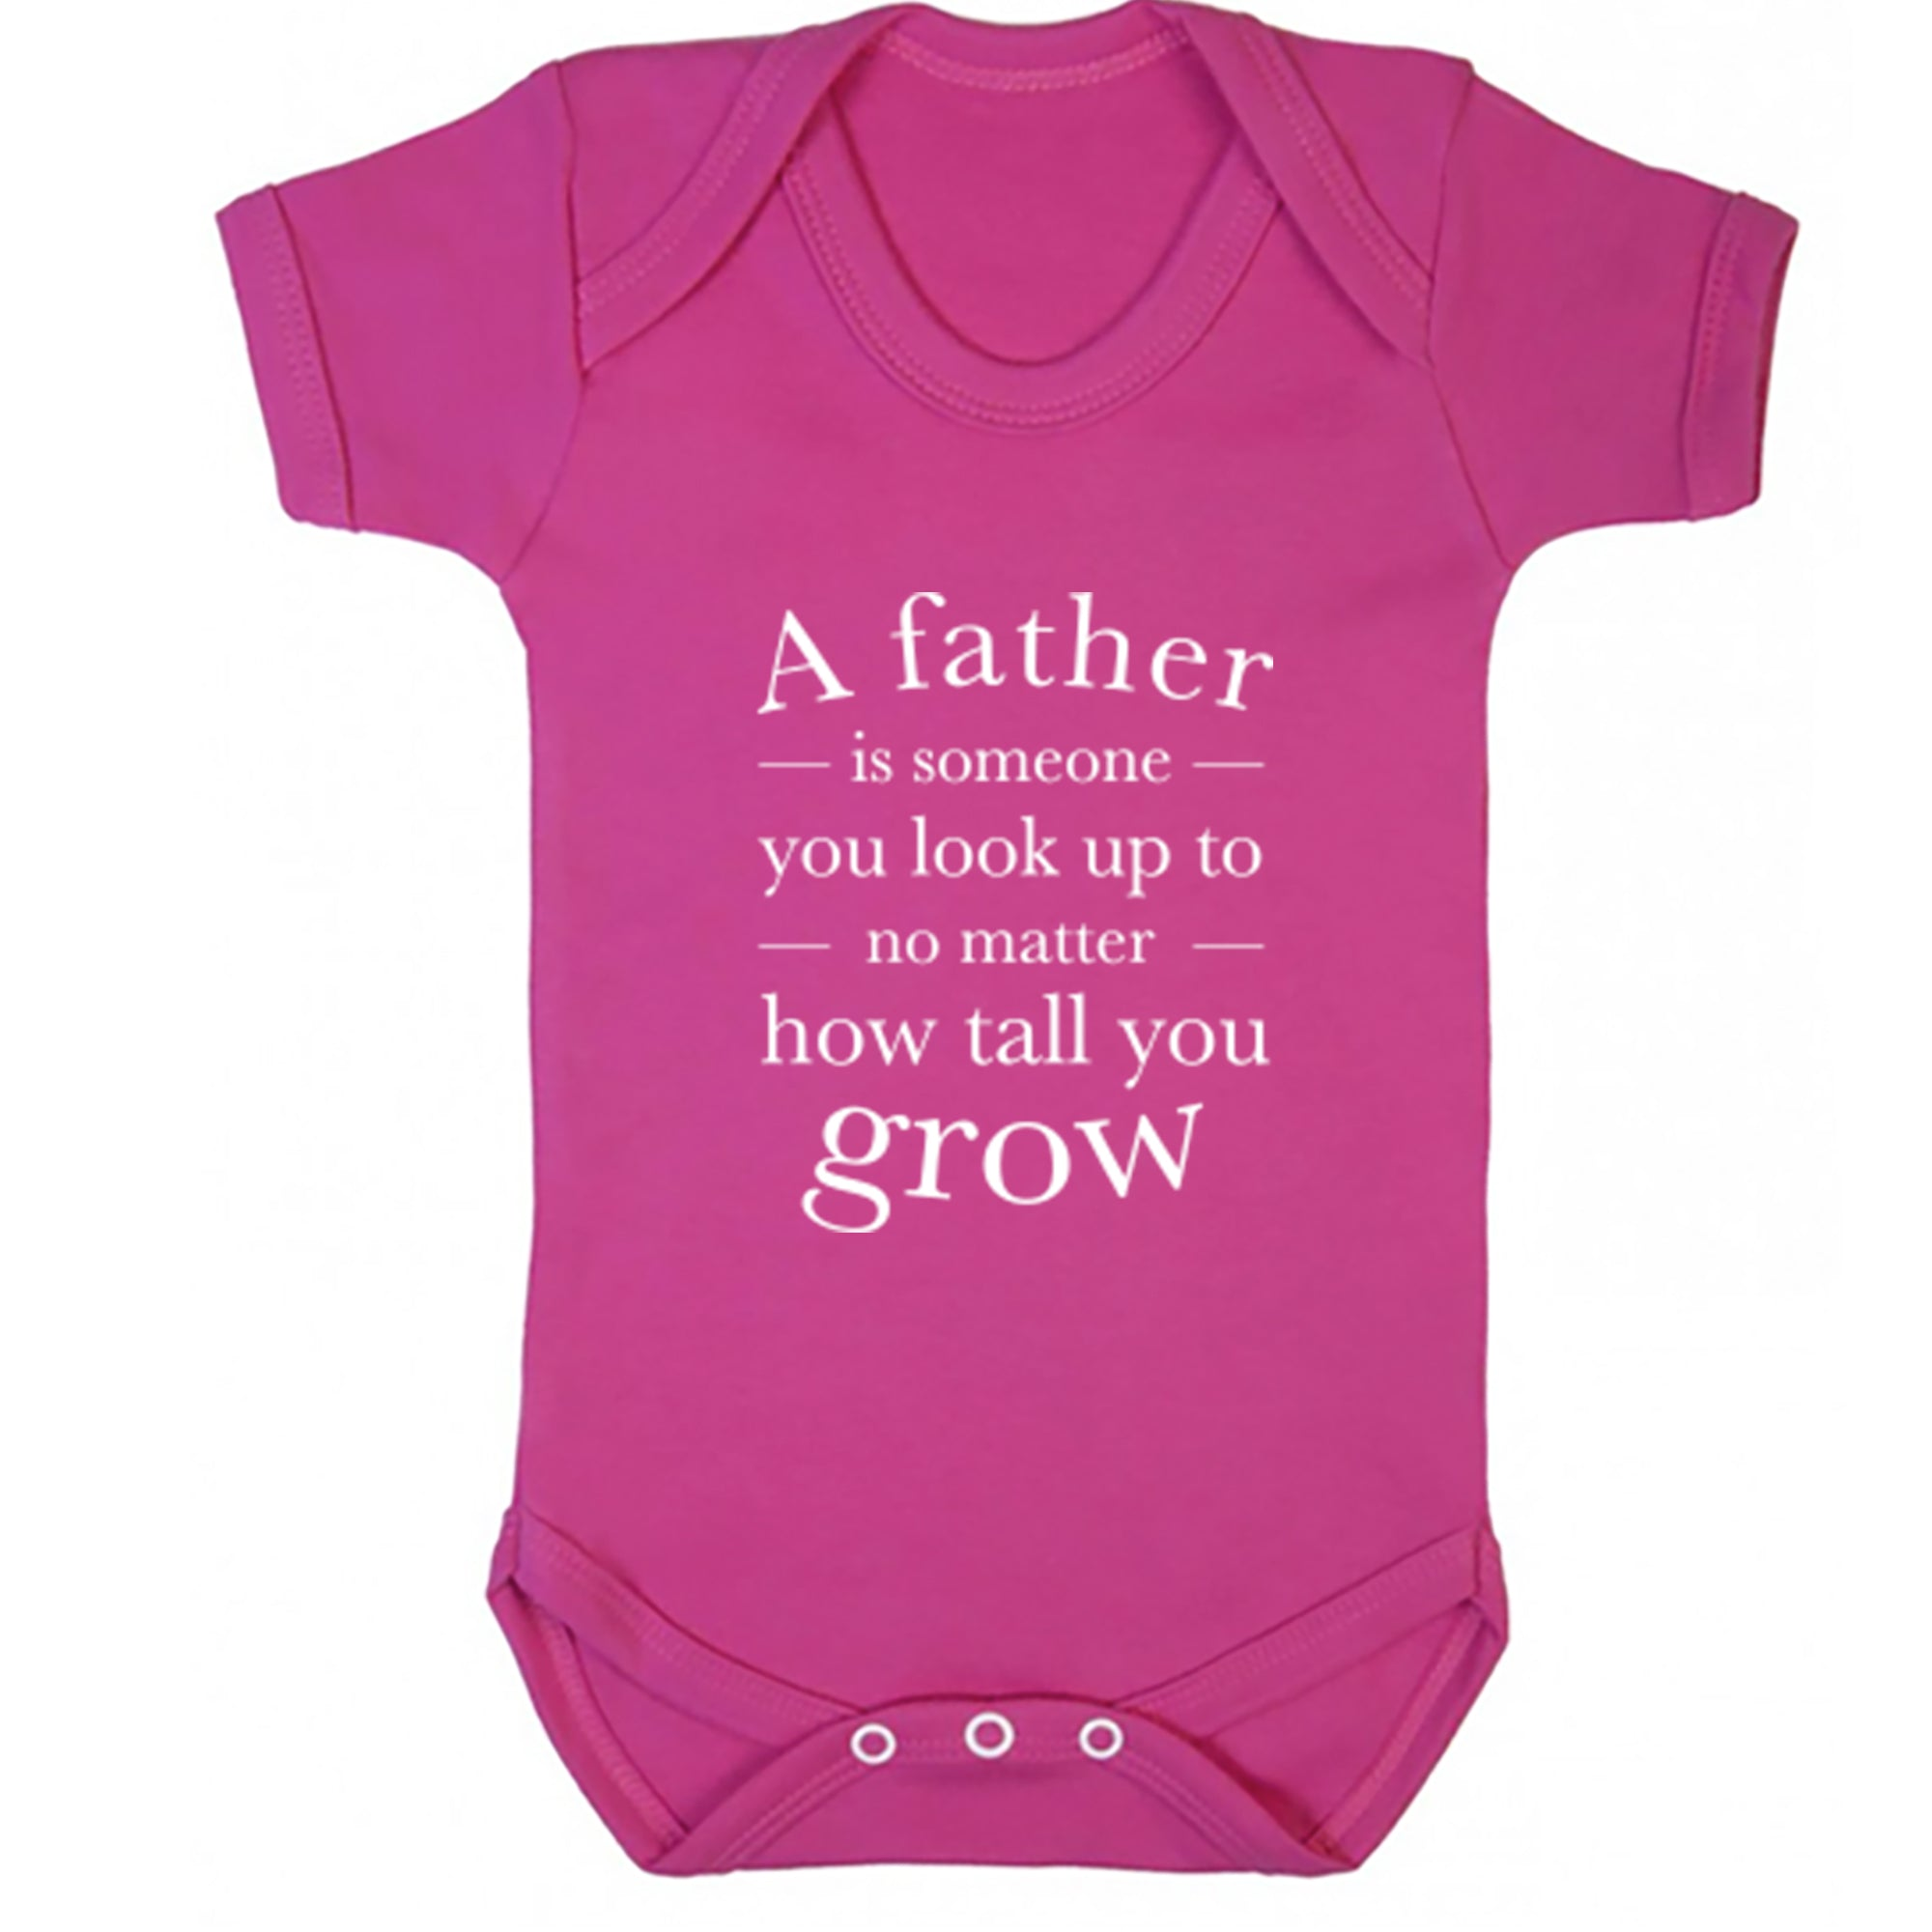 A Father Is Someone You look Up To No Matter How Tall You Grow Baby Vest S0719 - Illustrated Identity Ltd.